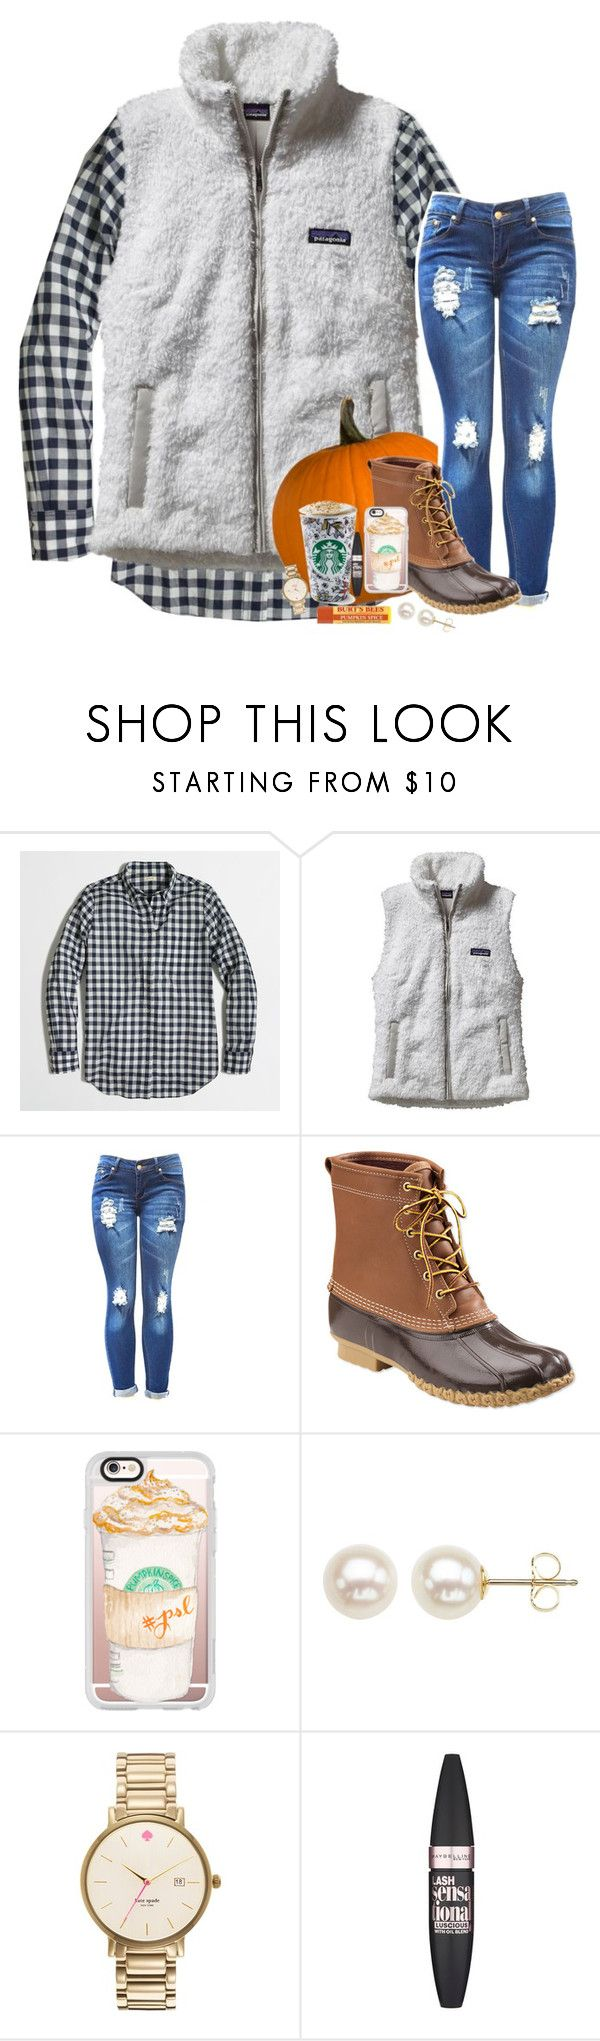 """""""First day of fall!! """" by kat-attack ❤ liked on Polyvore featuring J.Crew, Patagonia, L.L.Bean, Casetify, Honora, Kate Spade and Maybelline"""